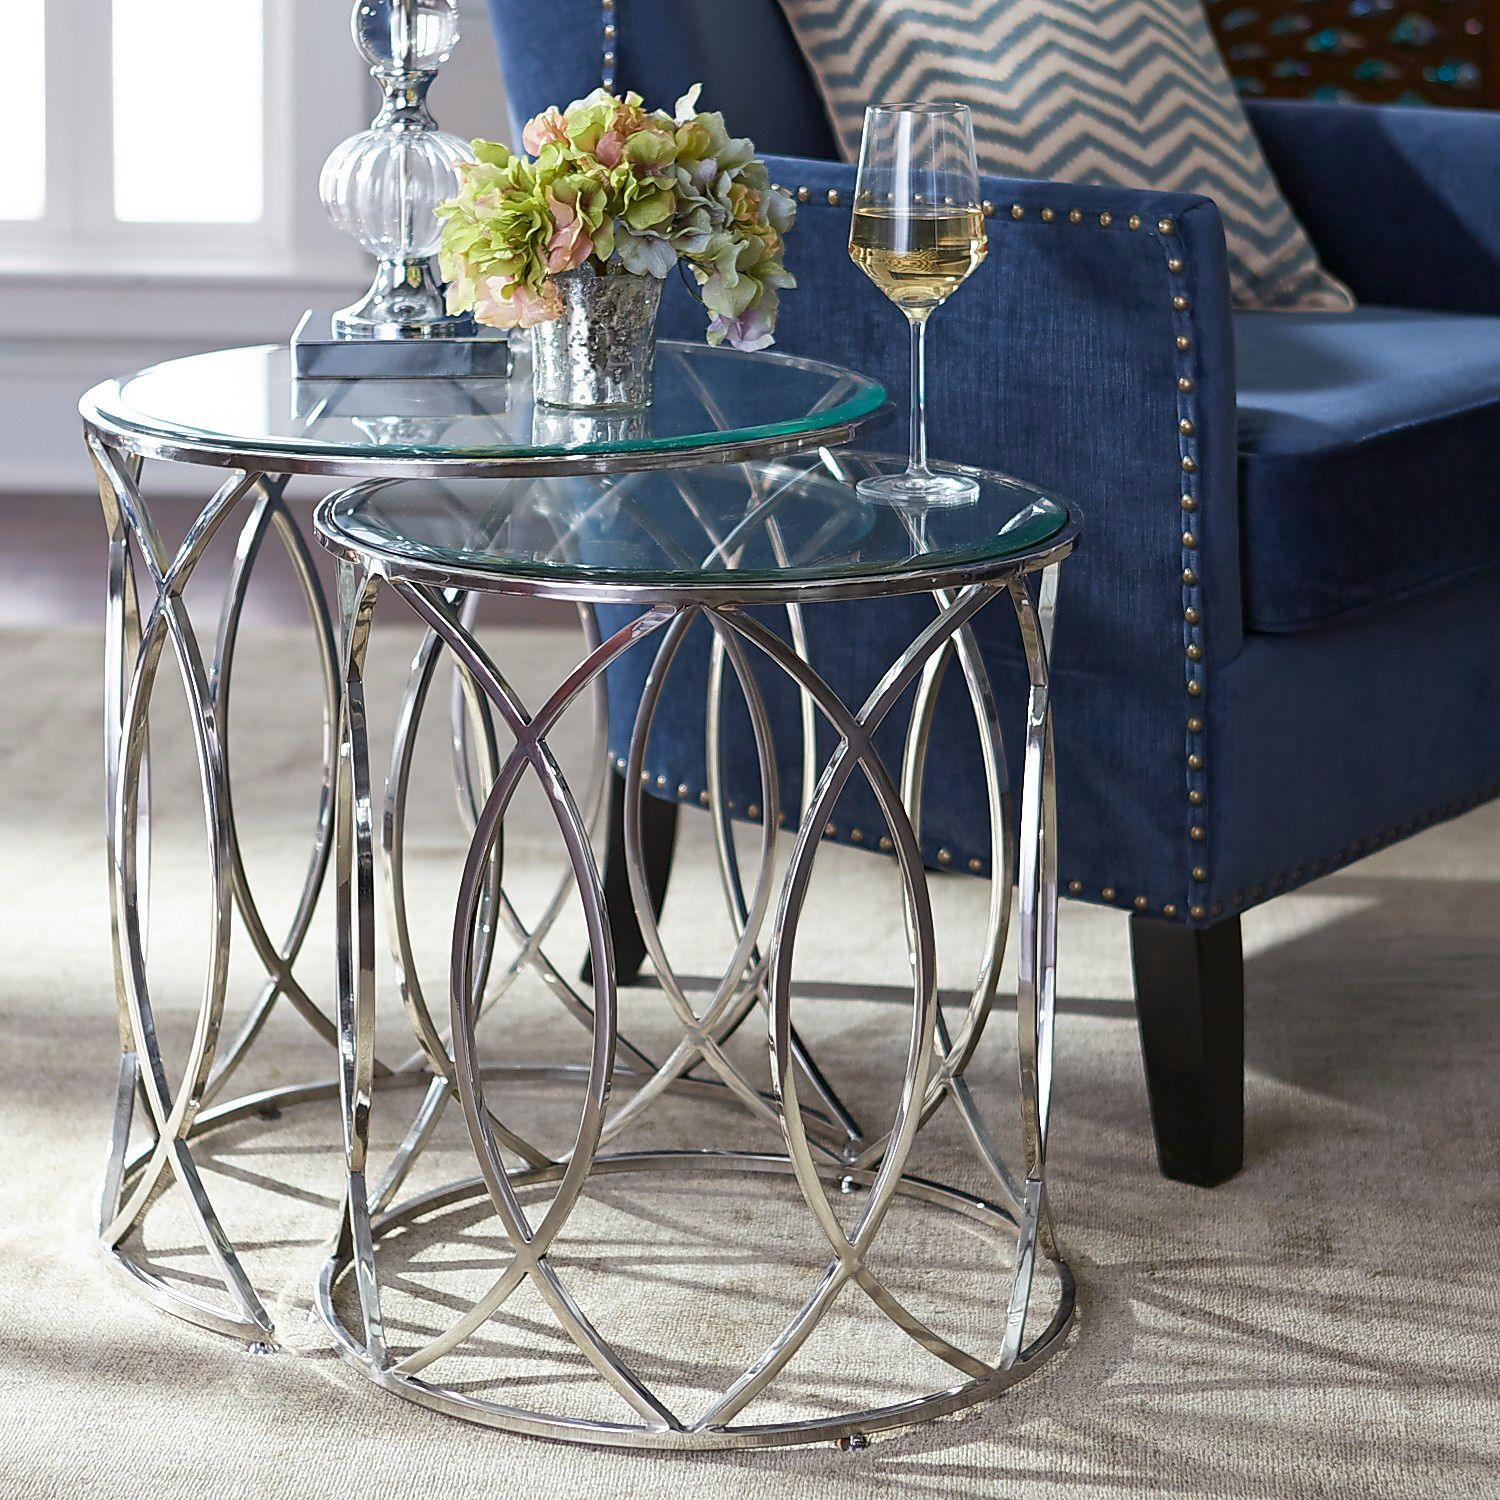 Elana Silver Stainless Steel Round Nesting Tables Nesting Tables